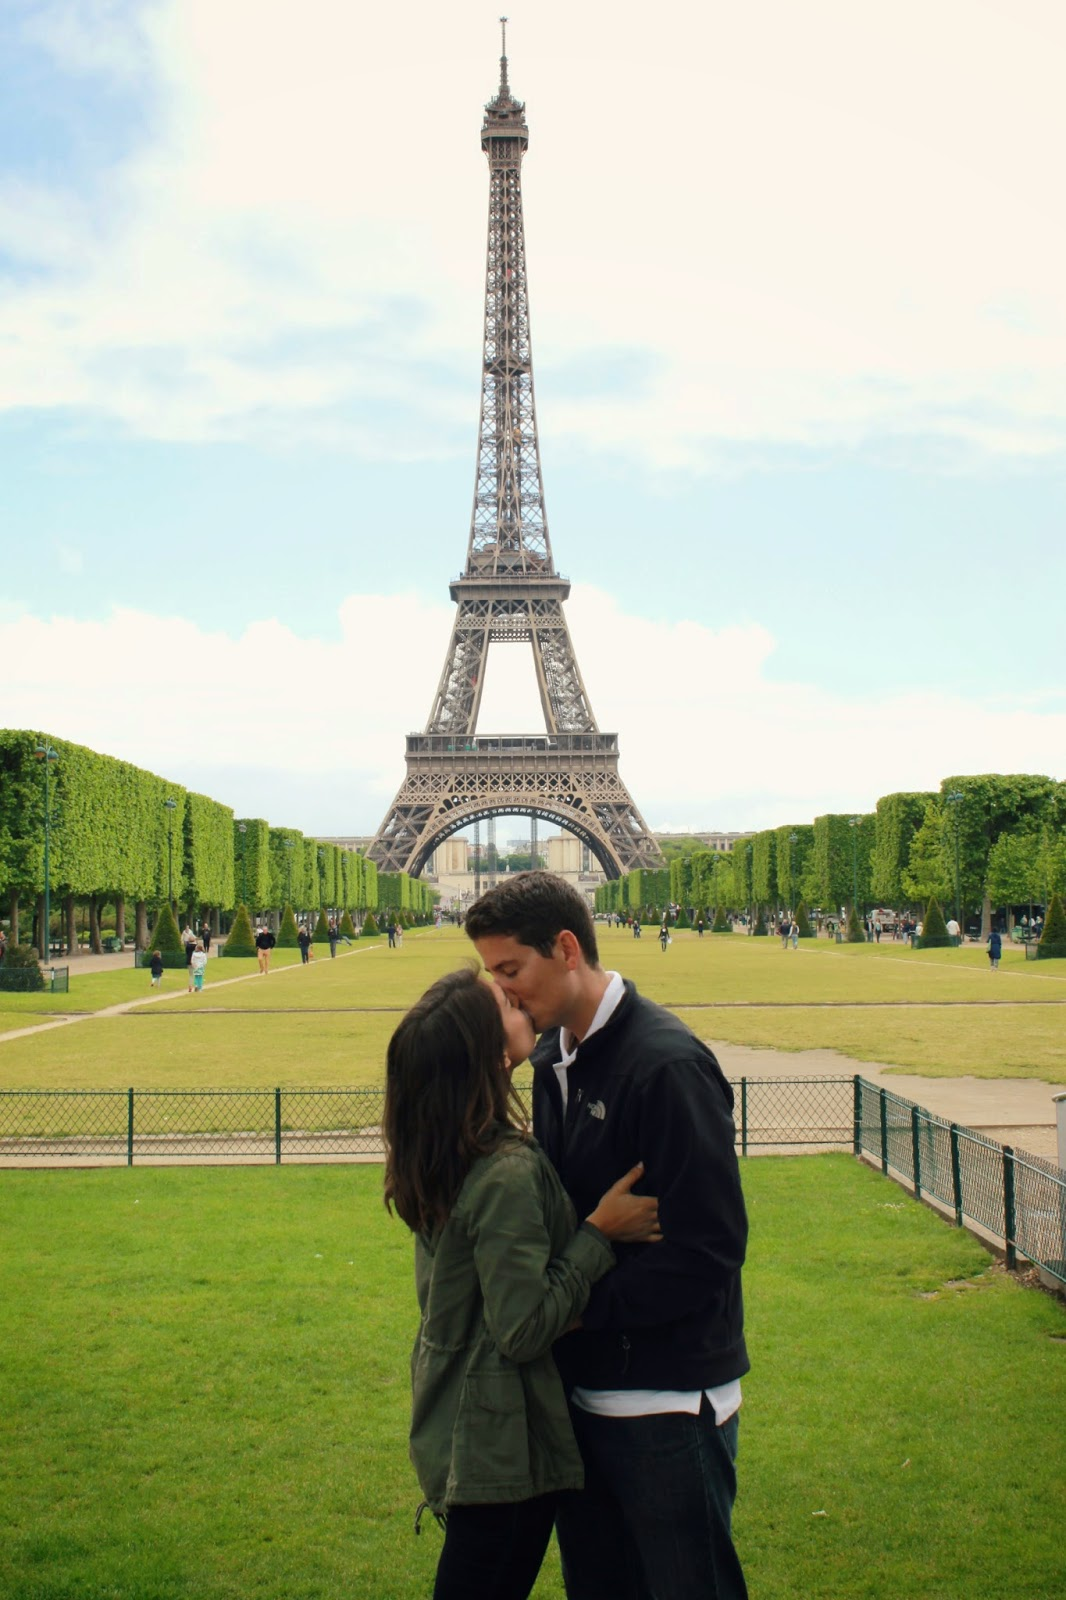 A couple kissing in front of the Eiffel Tower in Paris, France.